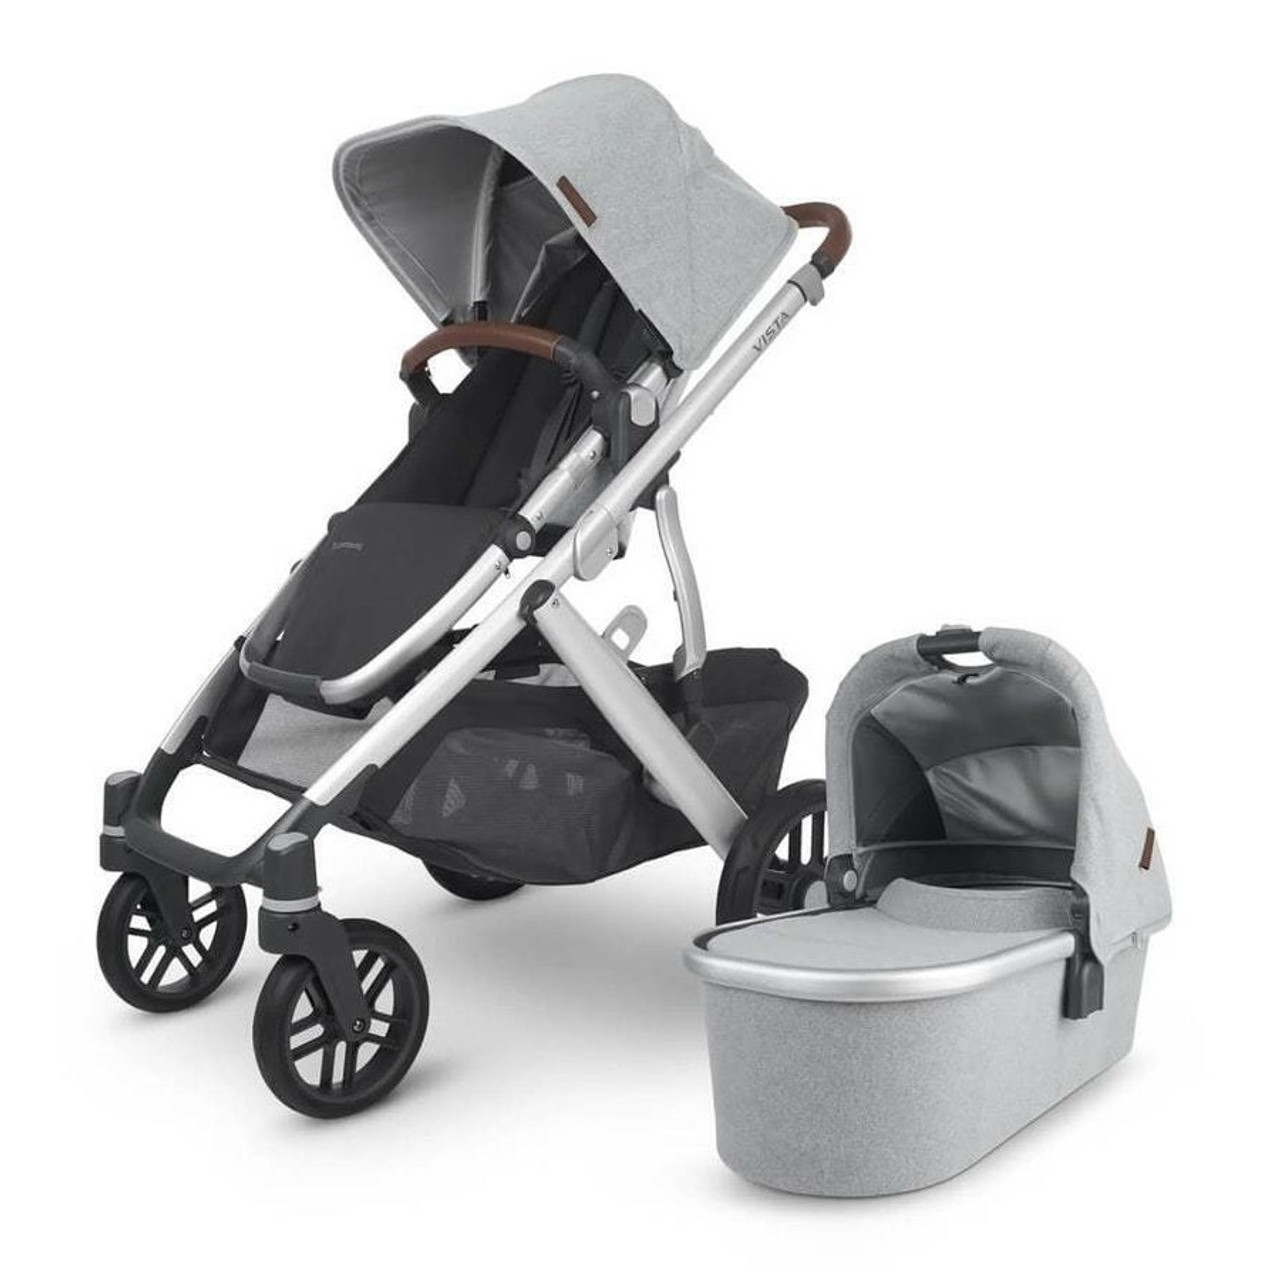 UPPAbaby VISTA (V2)2020 smooth and comfortable ride due to shock absorbing all wheel suspension.